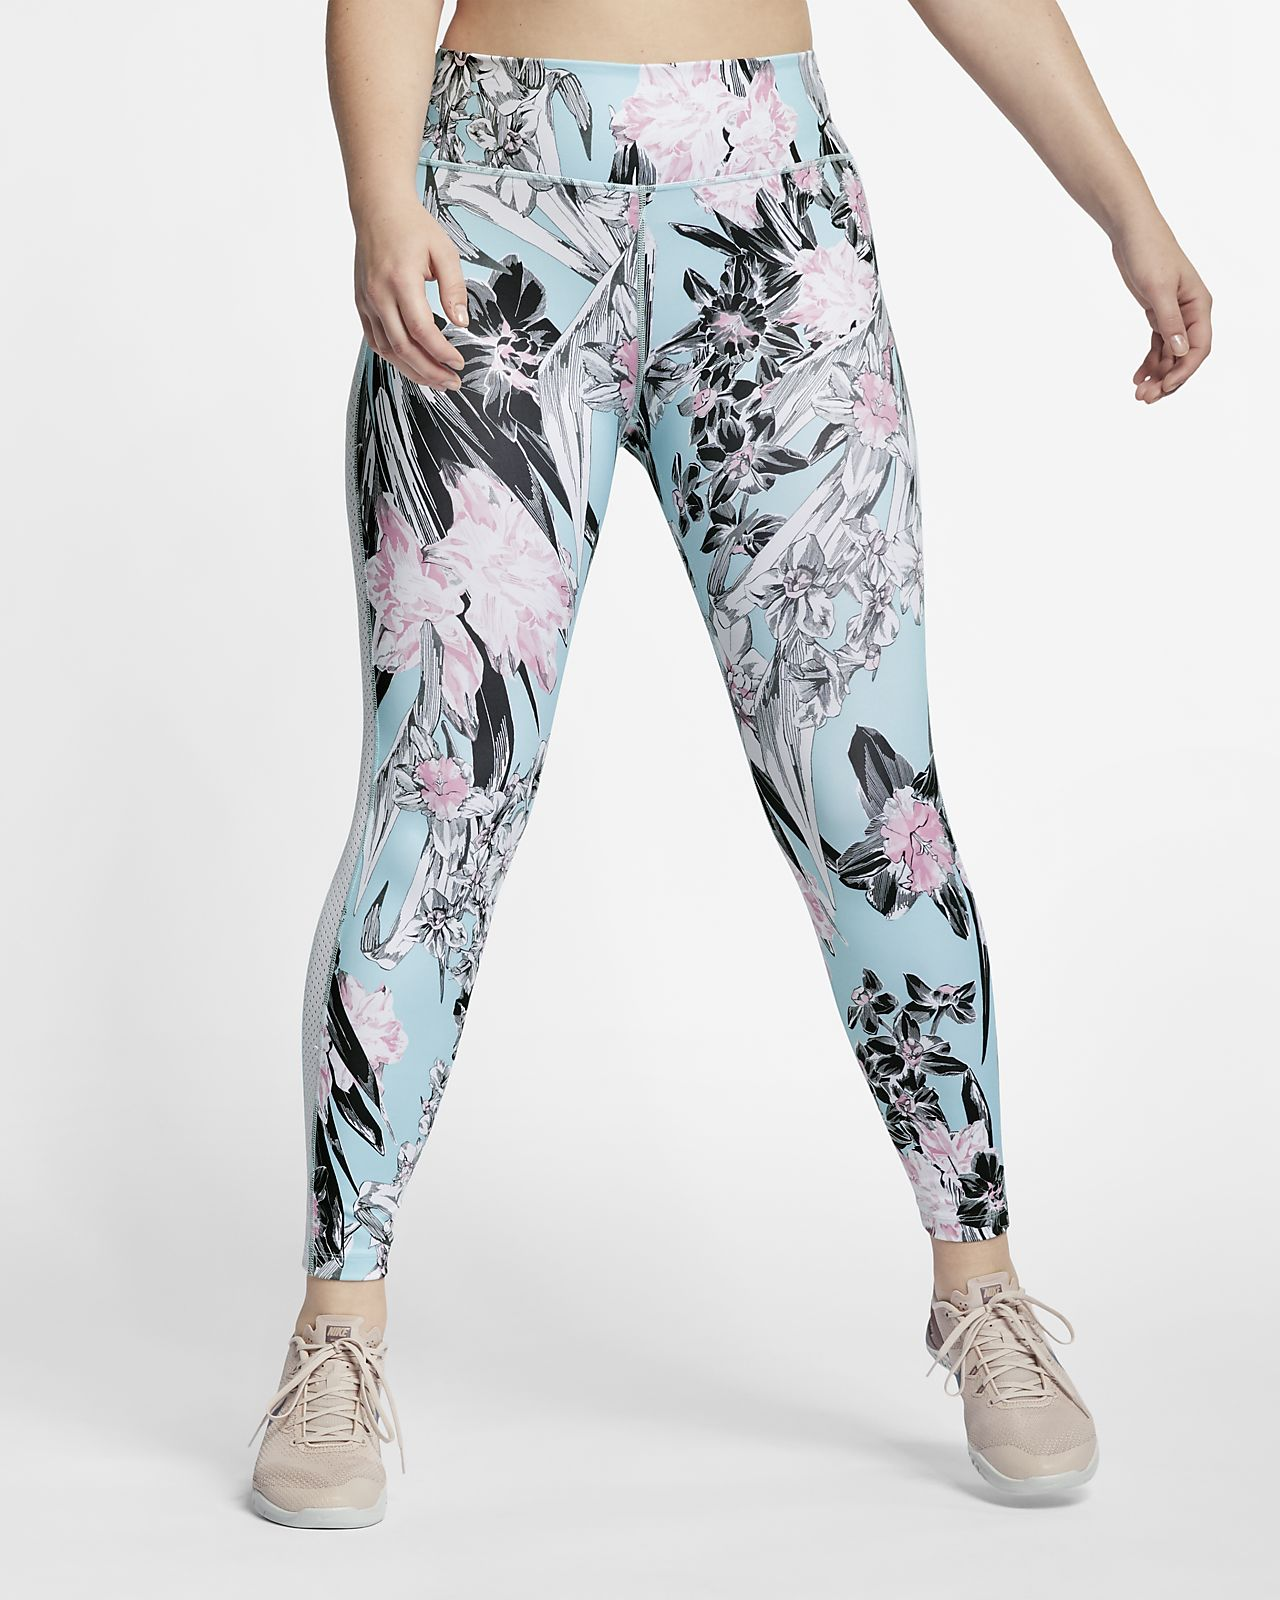 Nike One Women's Floral Training Tights (Plus Size)